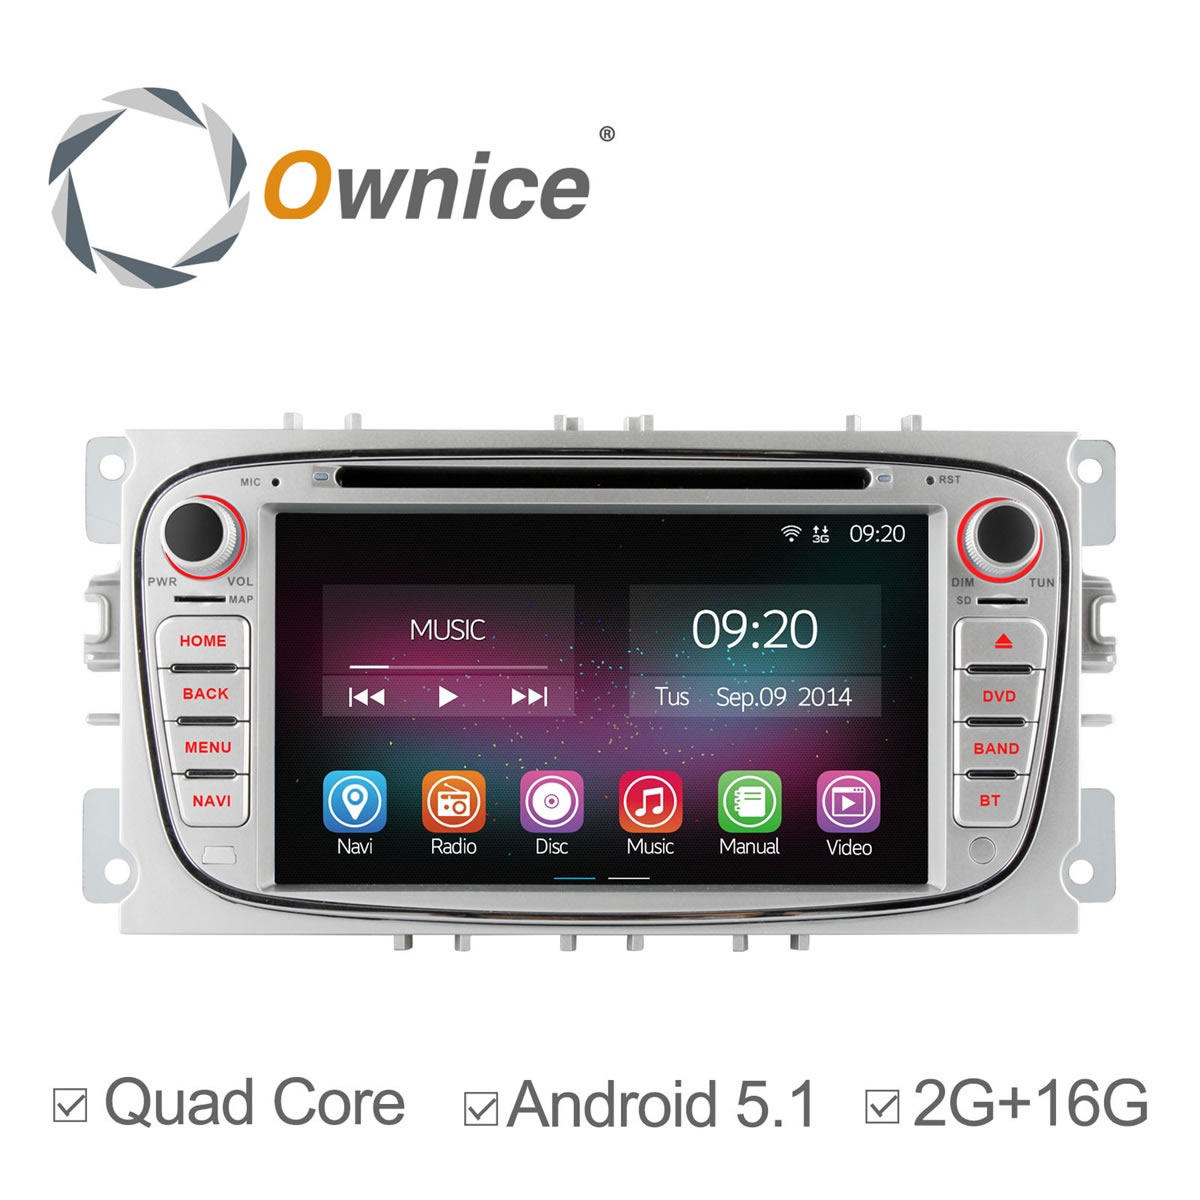 Ownice C200 4 Core font b Android b font 5 1 Car DVD GPS For Ford